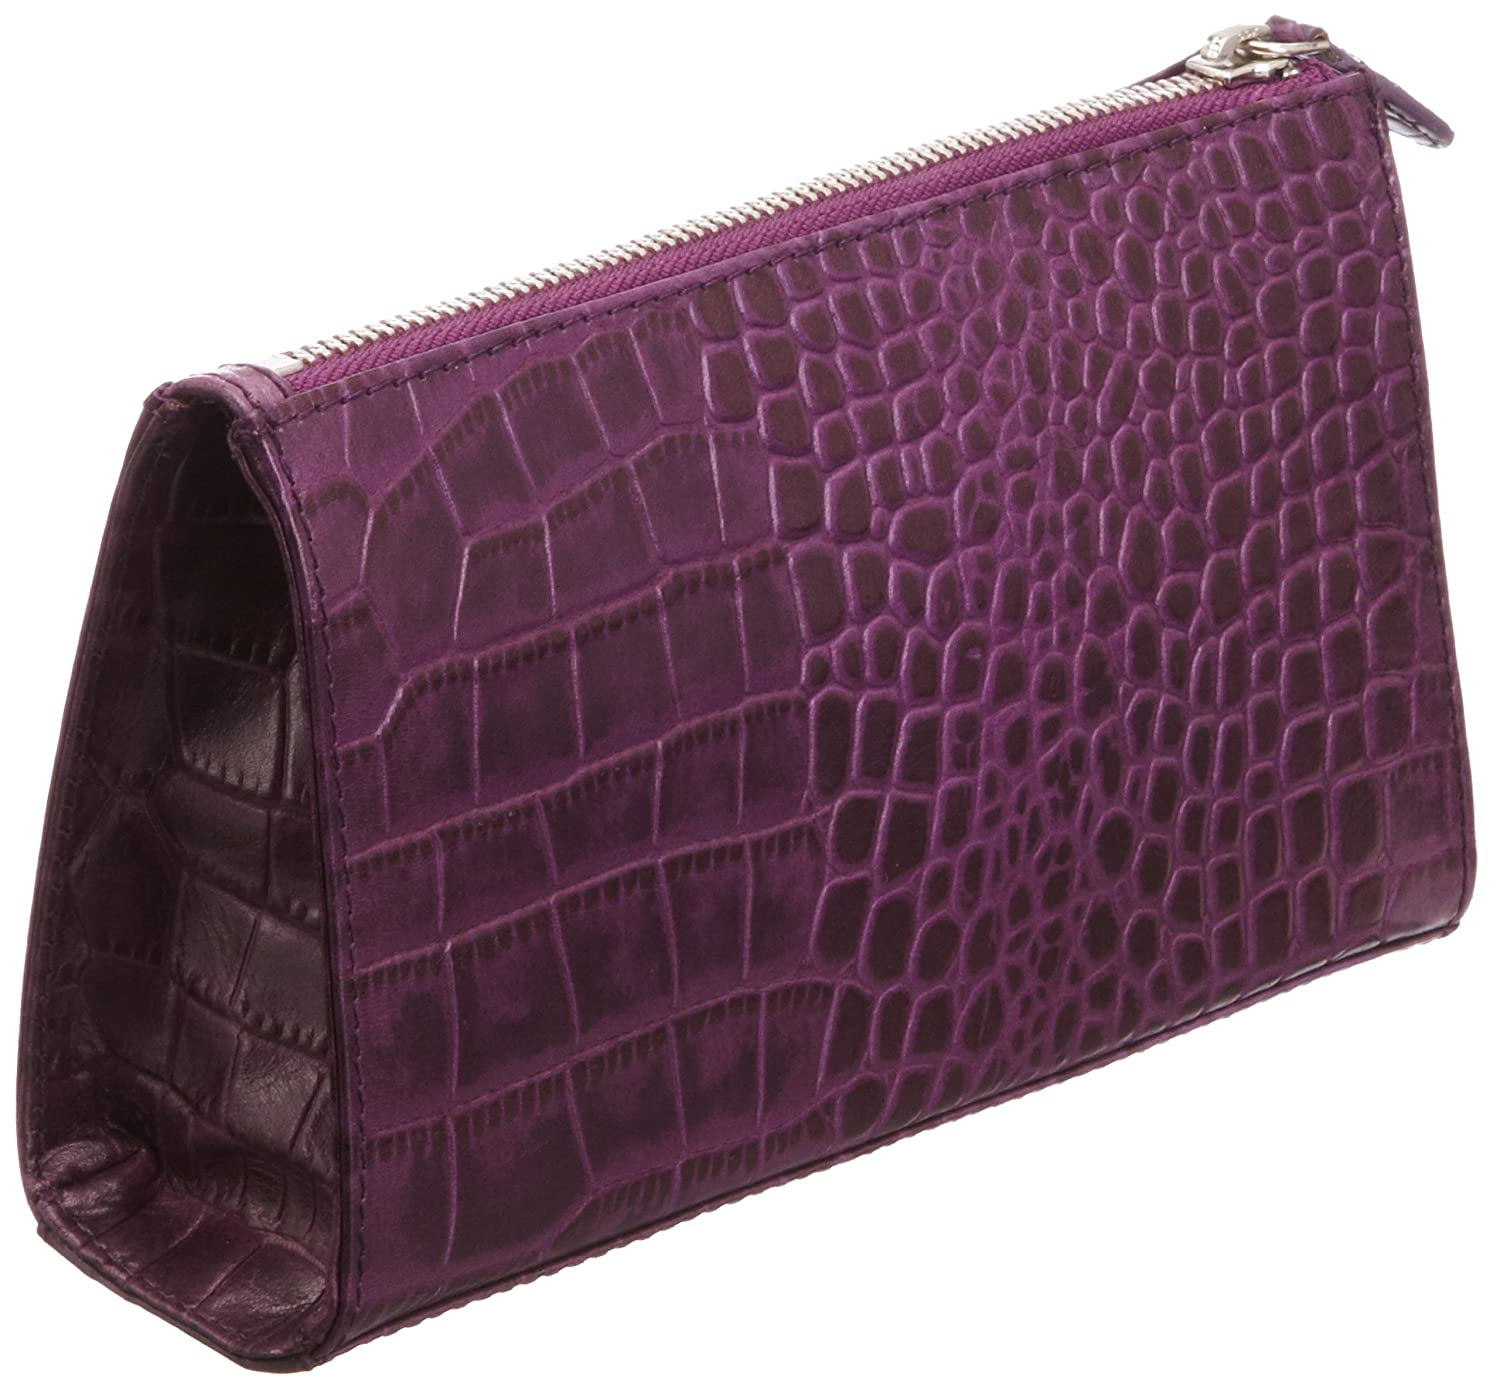 78f71f073e99 Osprey London Womens Large Belle Croc 10 Purse OL2374-10 Purple:  Amazon.co.uk: Luggage